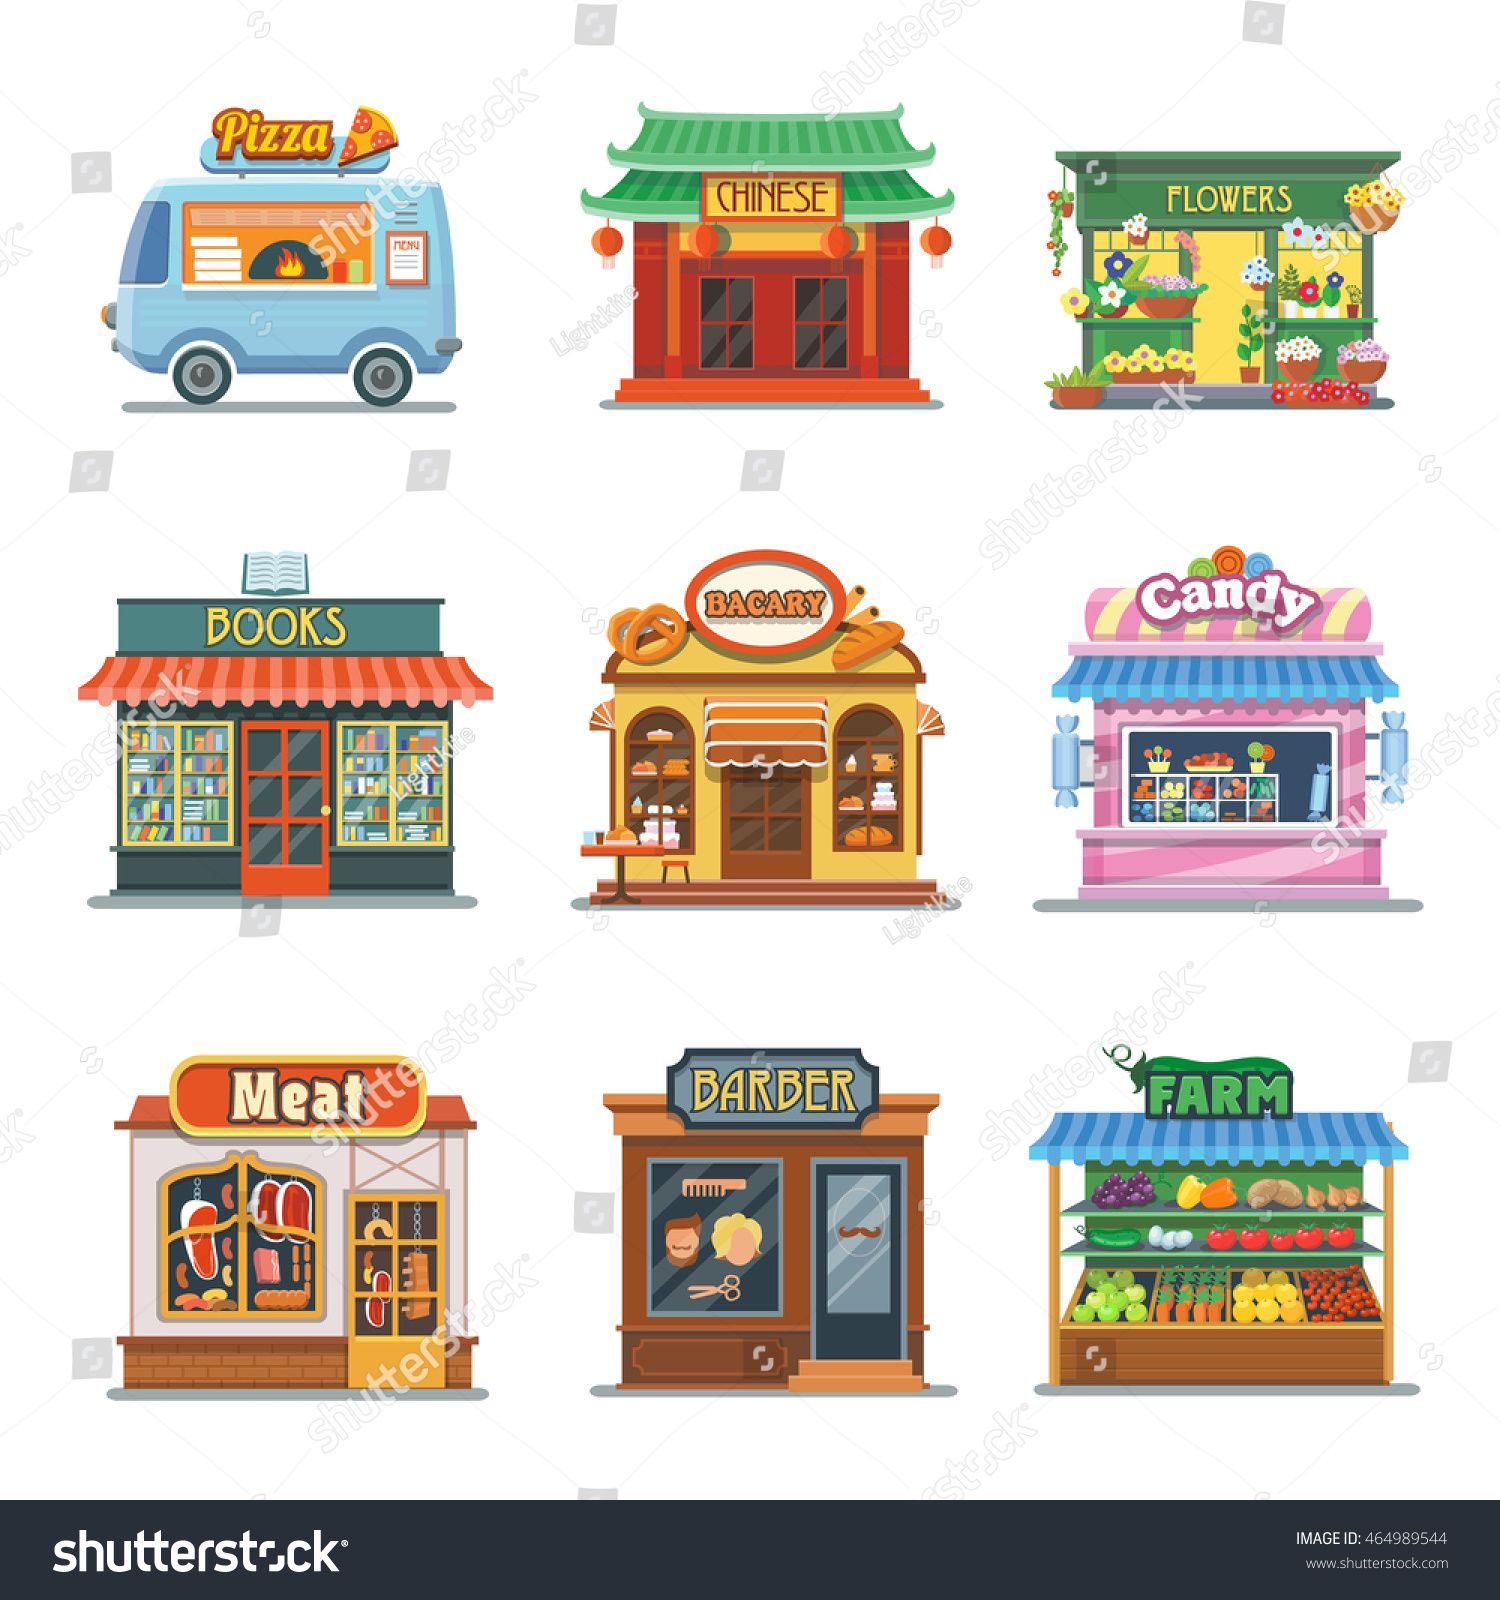 Set of nice showcases of shops. Pizza trailer, bakery